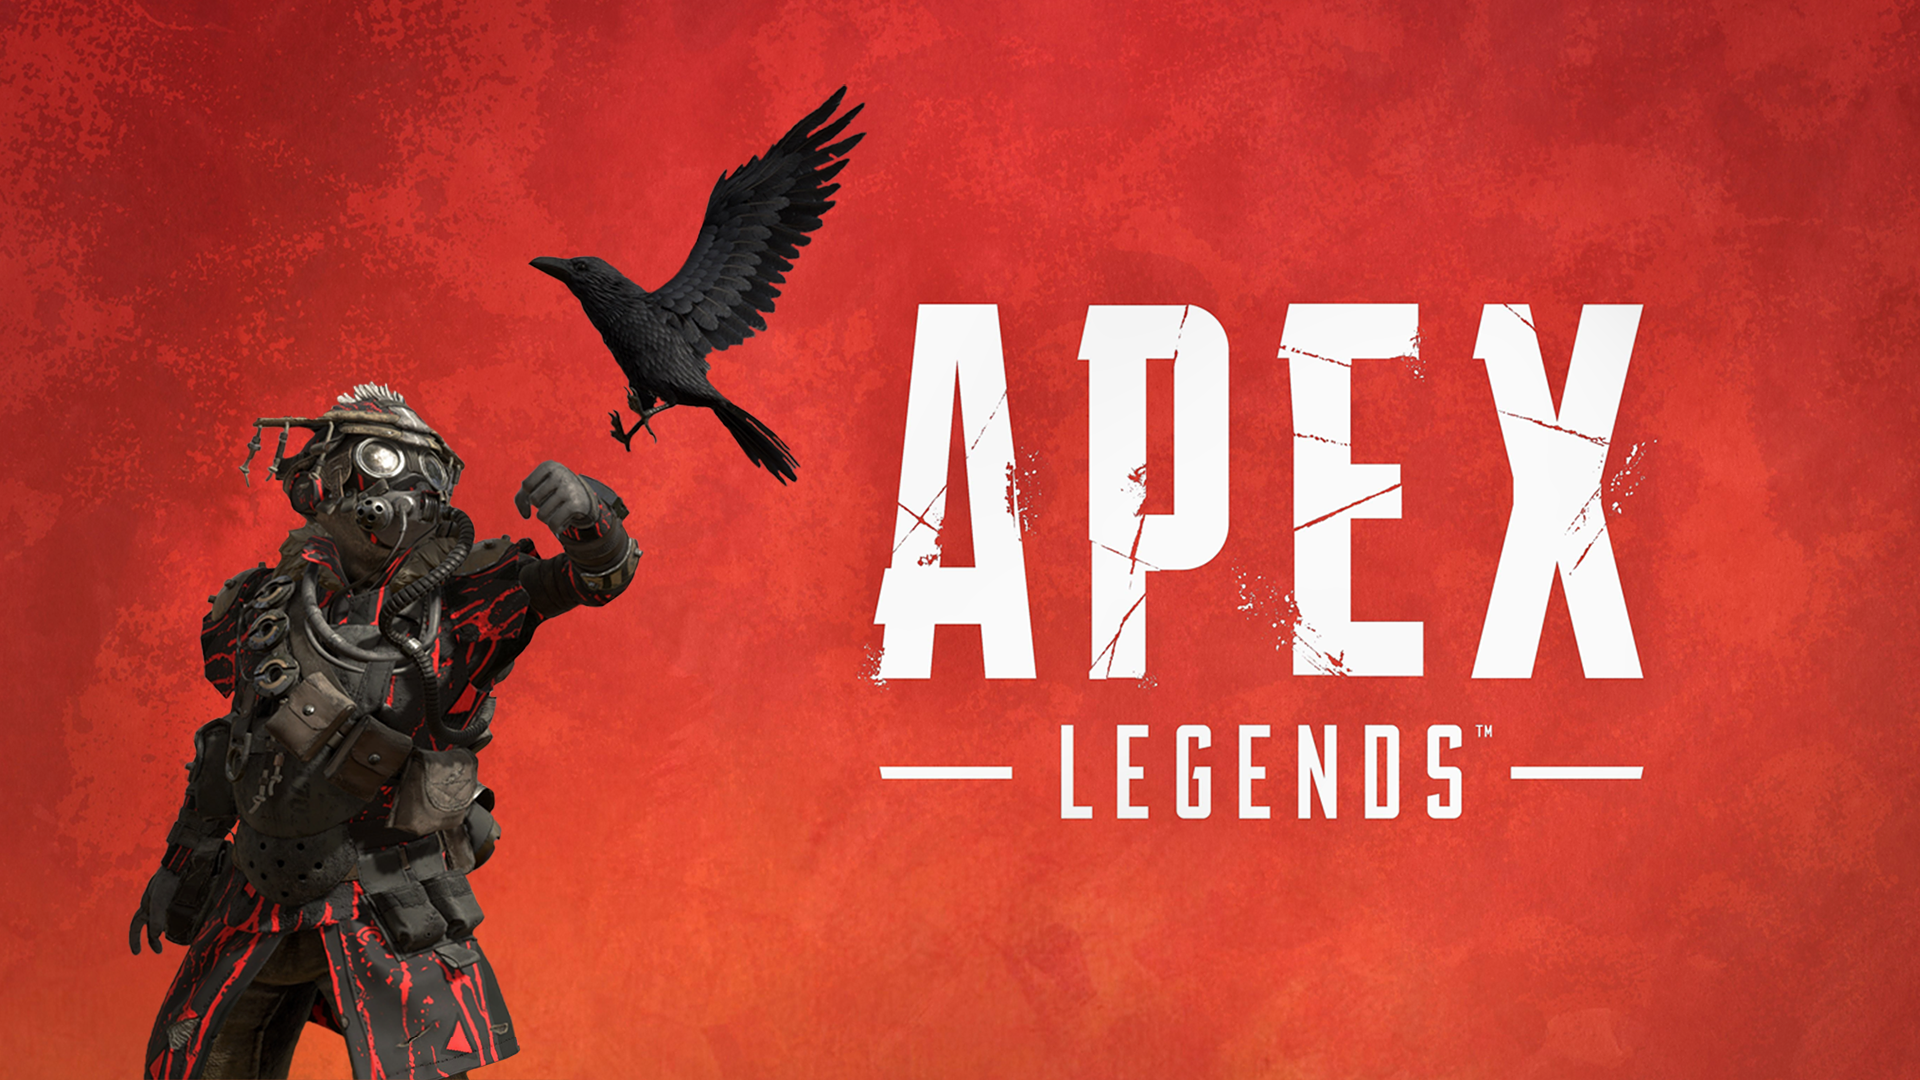 Apex Legends wallpaper hd download